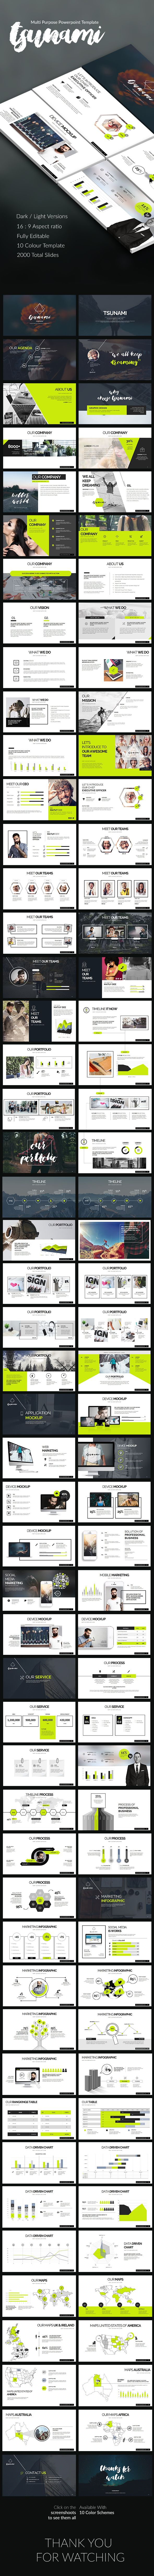 Tsunami Powerpoint Presentation  #creative #magazine • Download ➝ https://graphicriver.net/item/tsunami-powerpoint-presentation/18223050?ref=pxcr